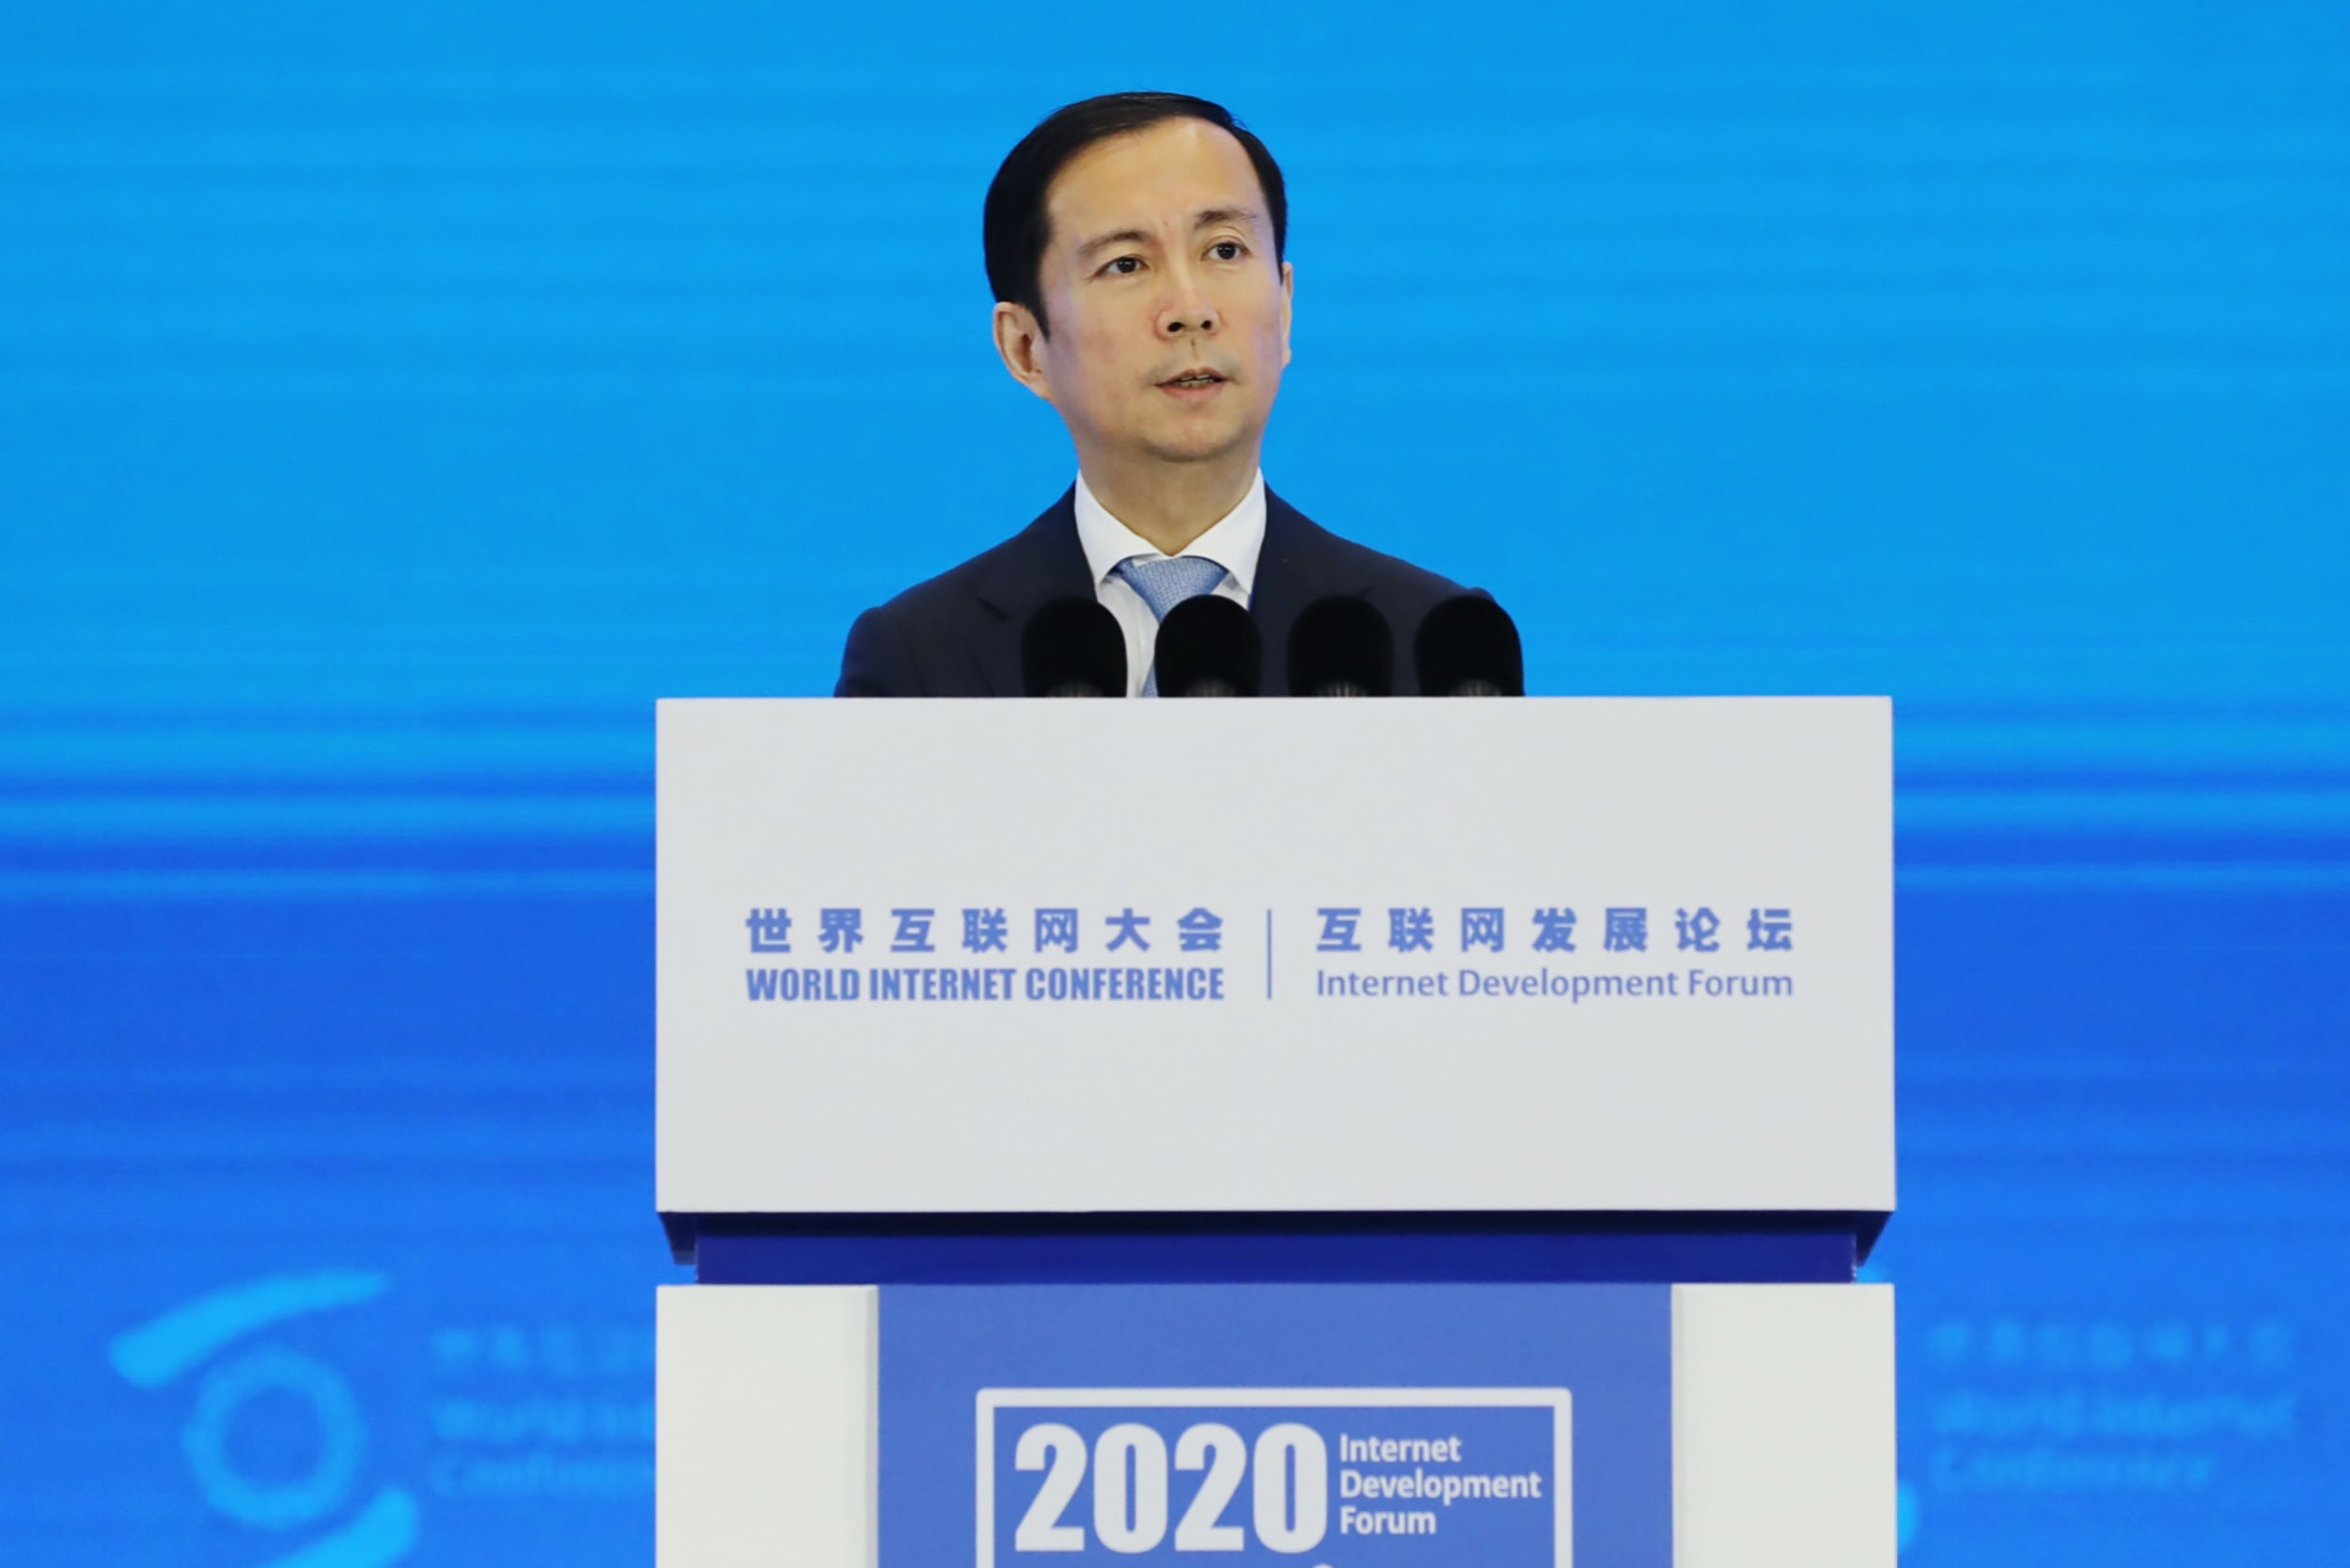 Alibaba CEO Daniel Zhang speaks at the World Internet Conference in Wuzhen on November 23, 2020. Getty Images.